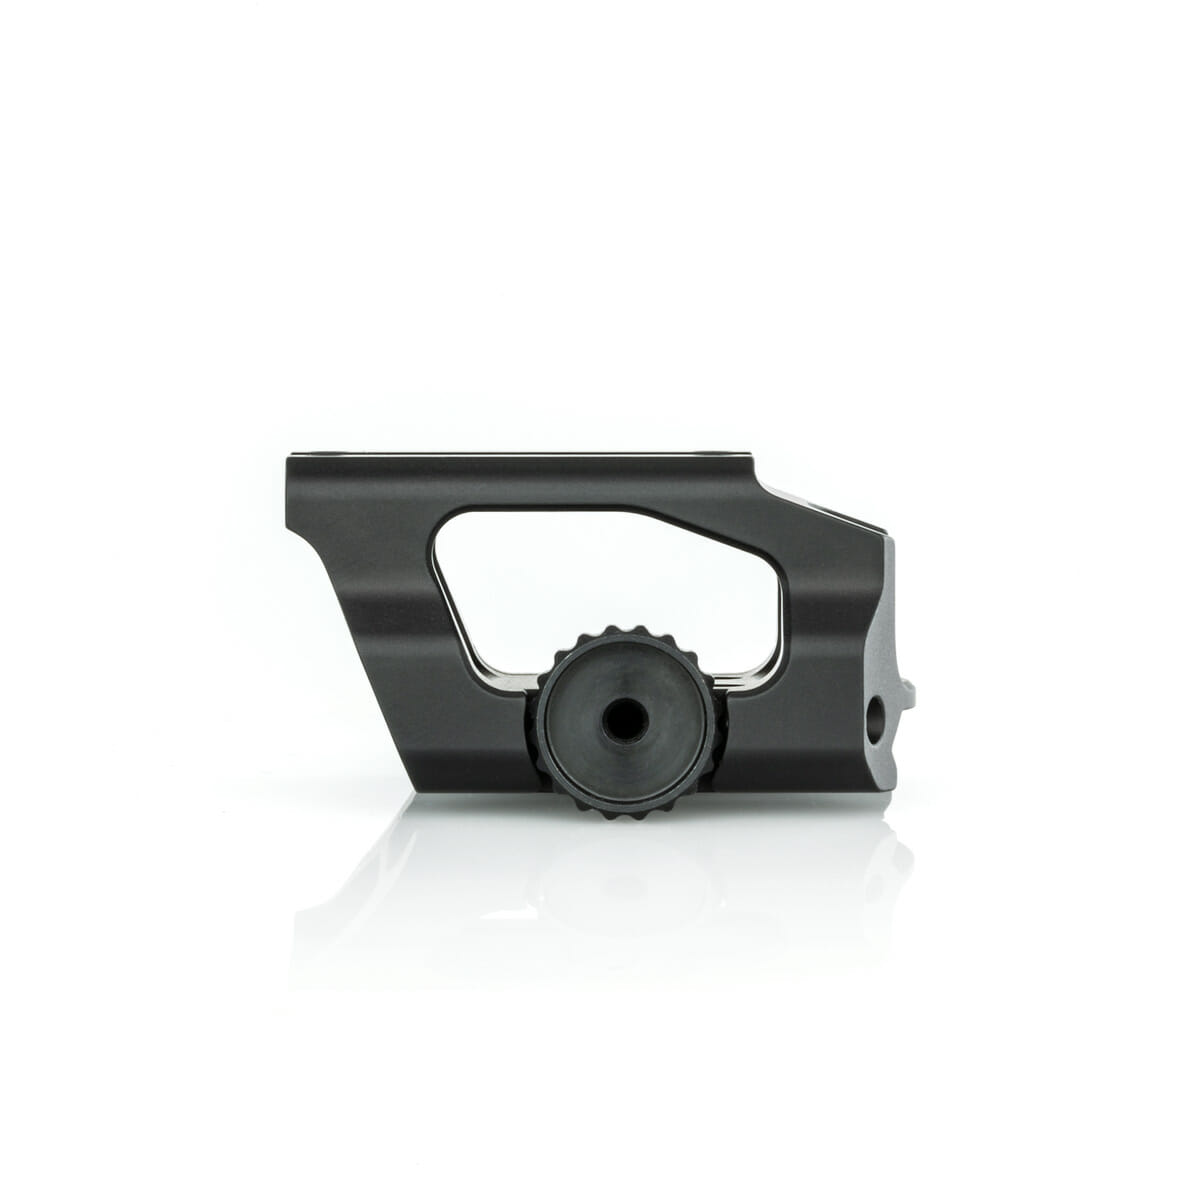 Scalarworks_SW0510_trijicon_mro_mount_side